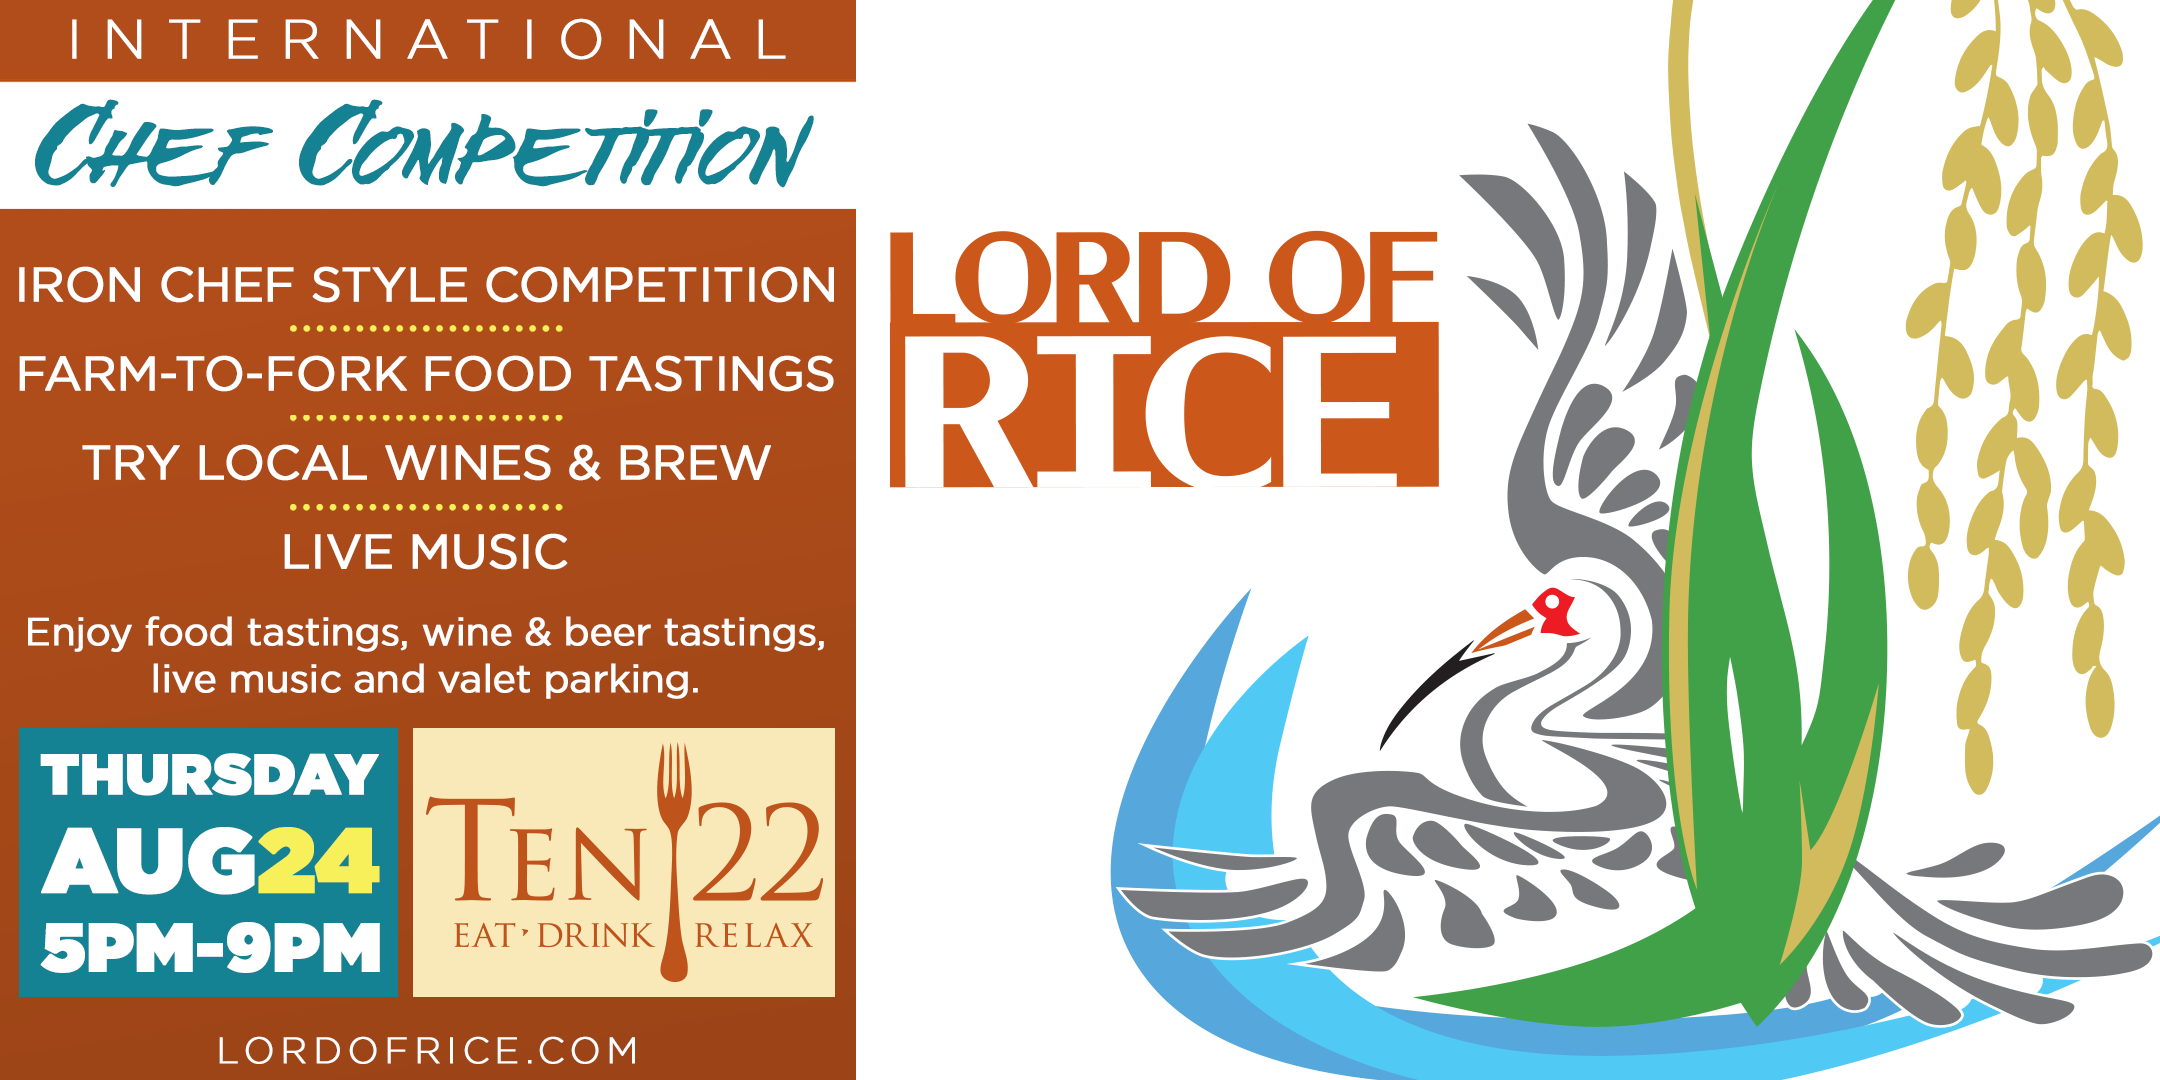 2017 LORD OF RICE Culinary Challenge. 2017 LORD OF RICE Culinary Challenge